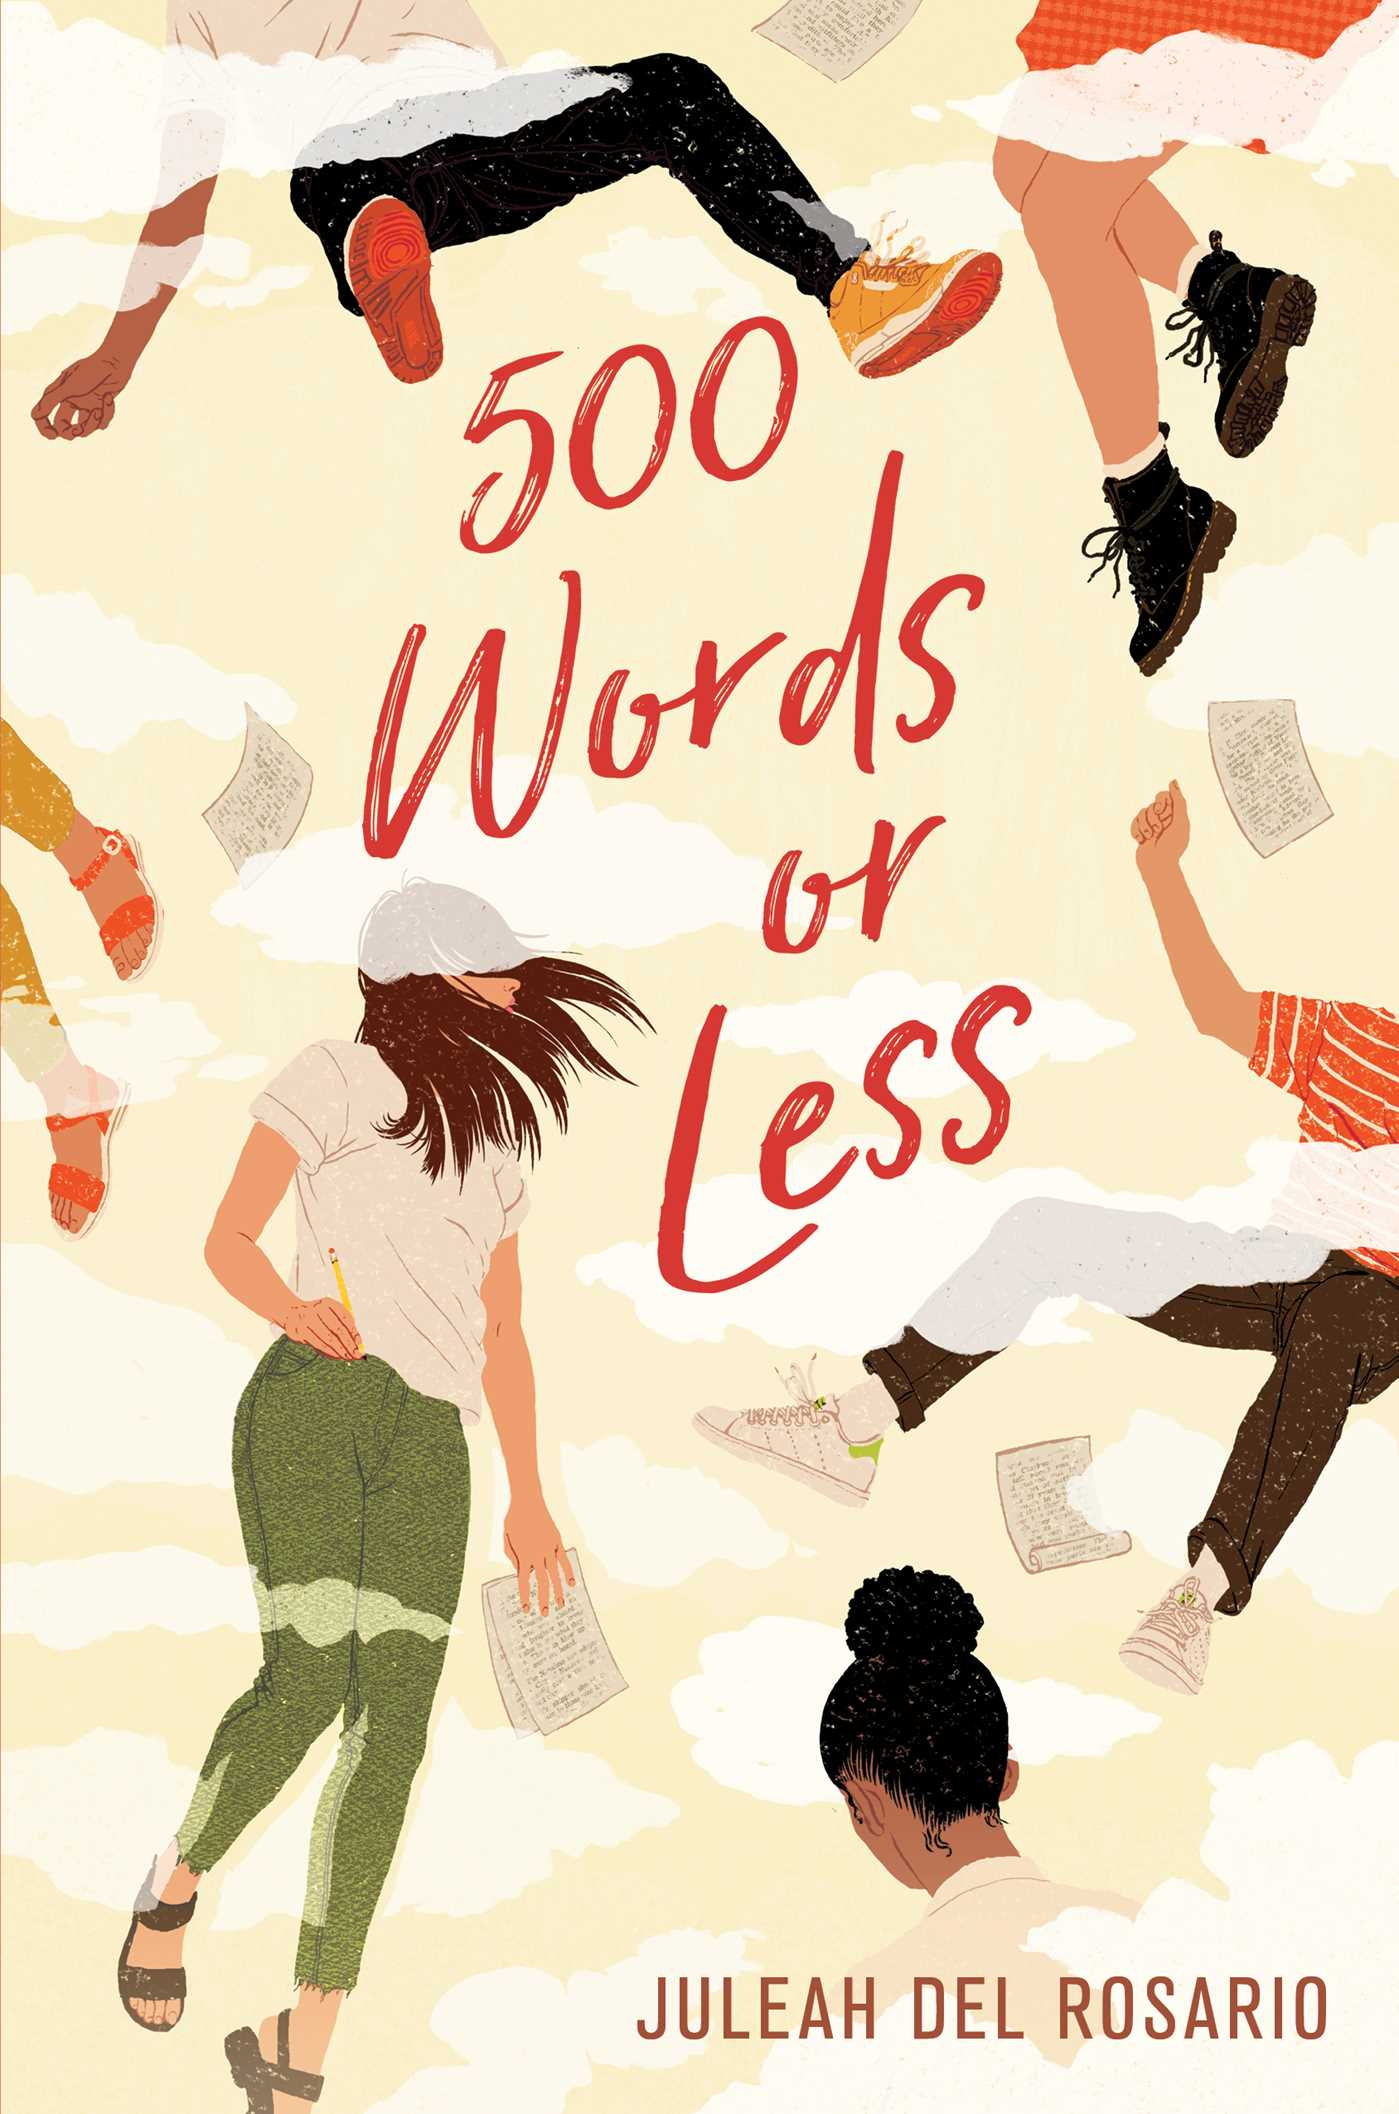 500 Words or Less by Juleah del Rosario (23 Books by Filipino Diaspora Authors For Your Shelf)